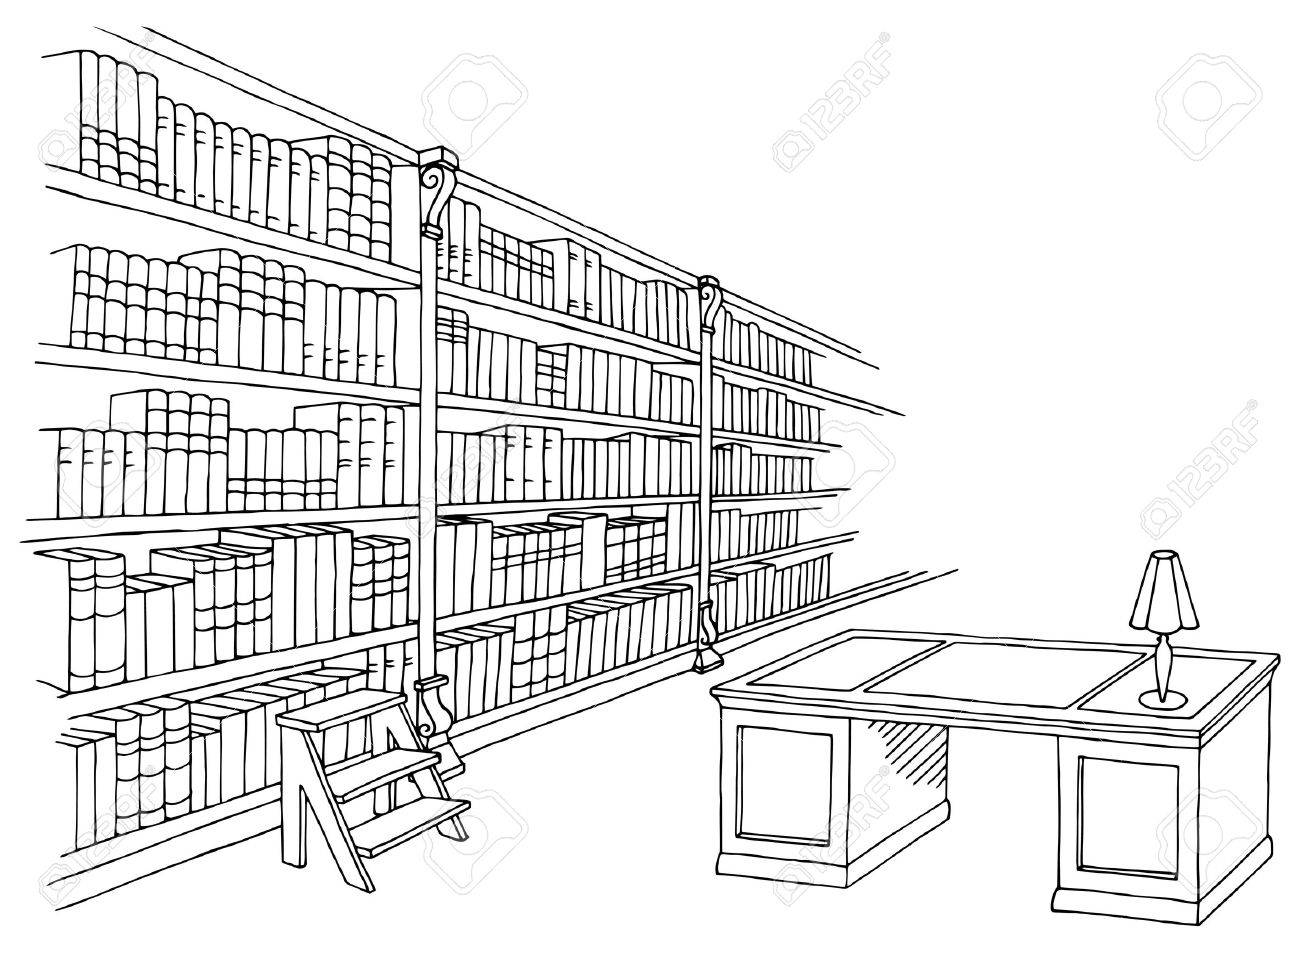 Library room interior black white graphic sketch illustration...